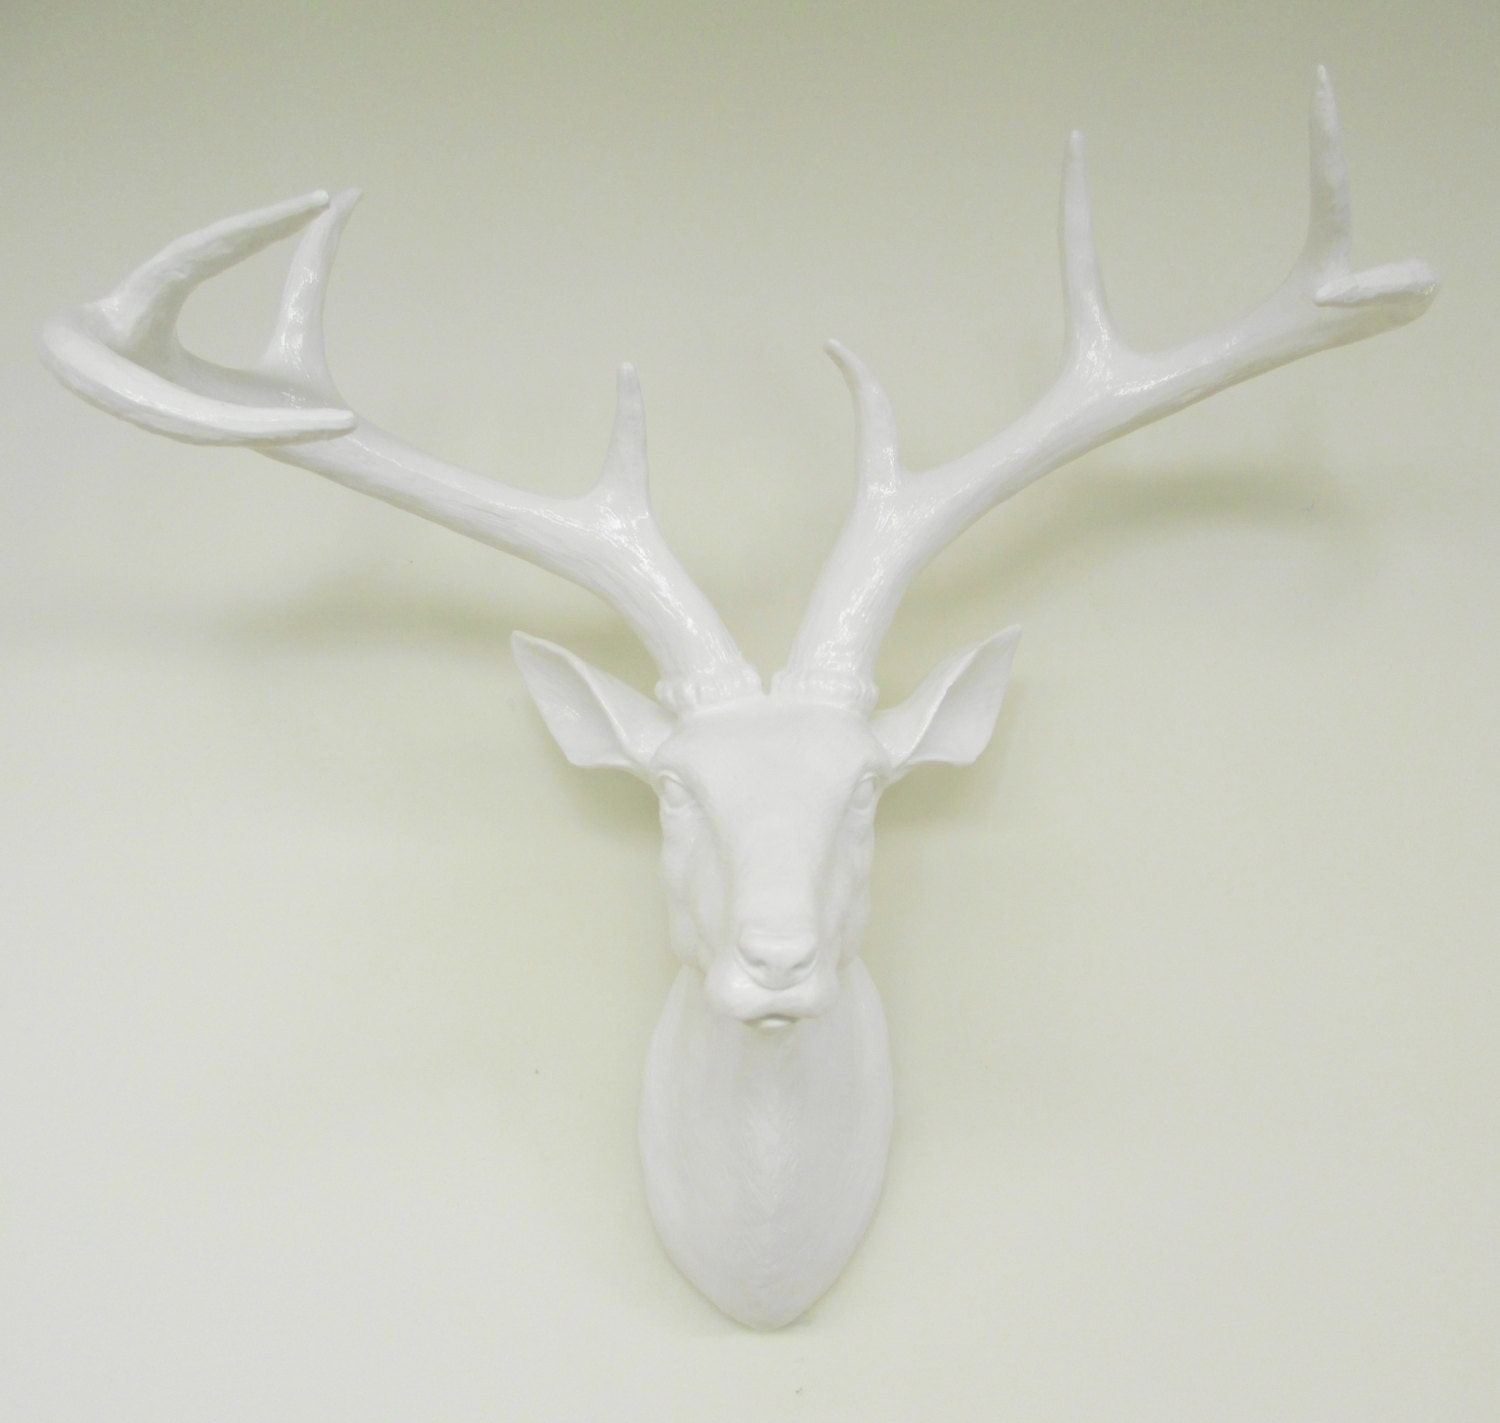 White, Wedding, Deer Head, Faux Taxidermy, Stag, Faux Deer Head, Deer, Home Decor